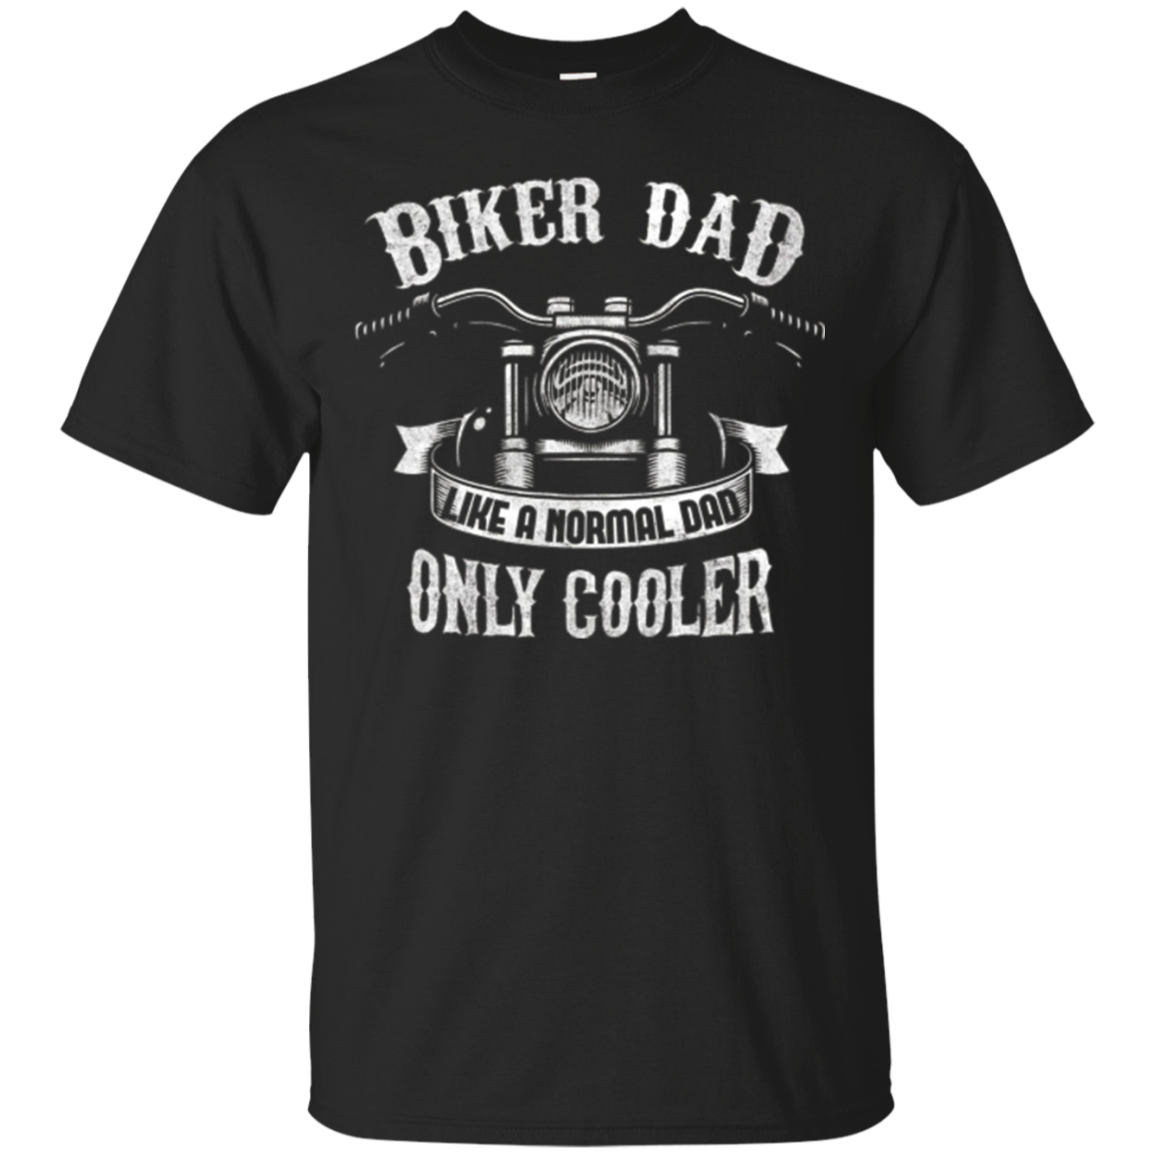 Biker Dad Motorcycle T-Shirt - For Motorcycle Fathers